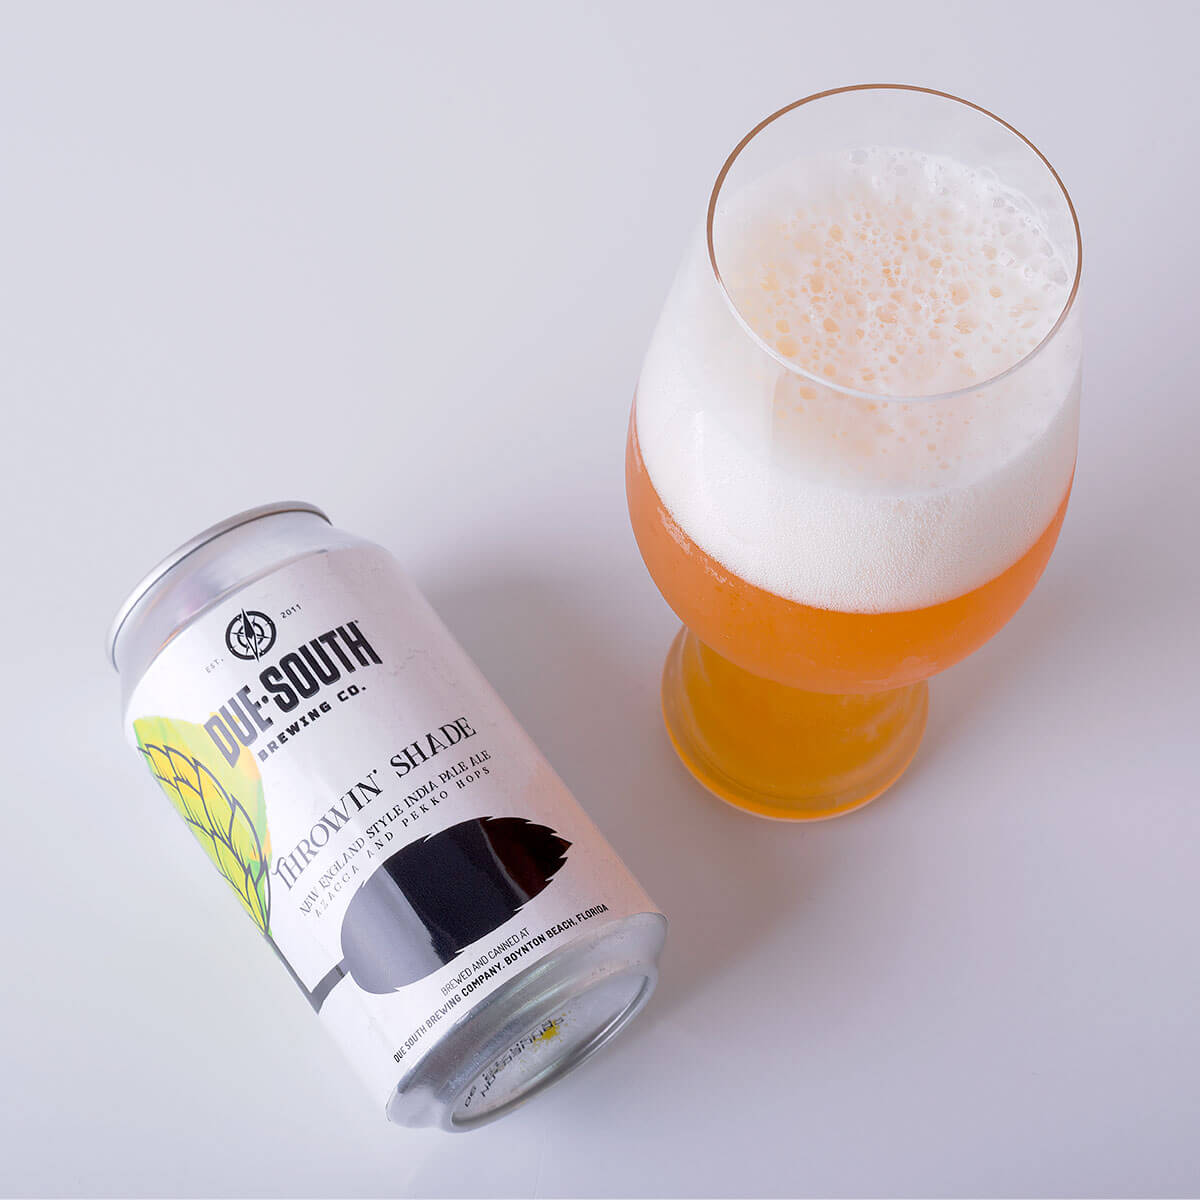 Throwin' Shade is a New England IPA that's brewed by Due South Brewing Co. that features hoppy citrus and mellow tropical fruit.